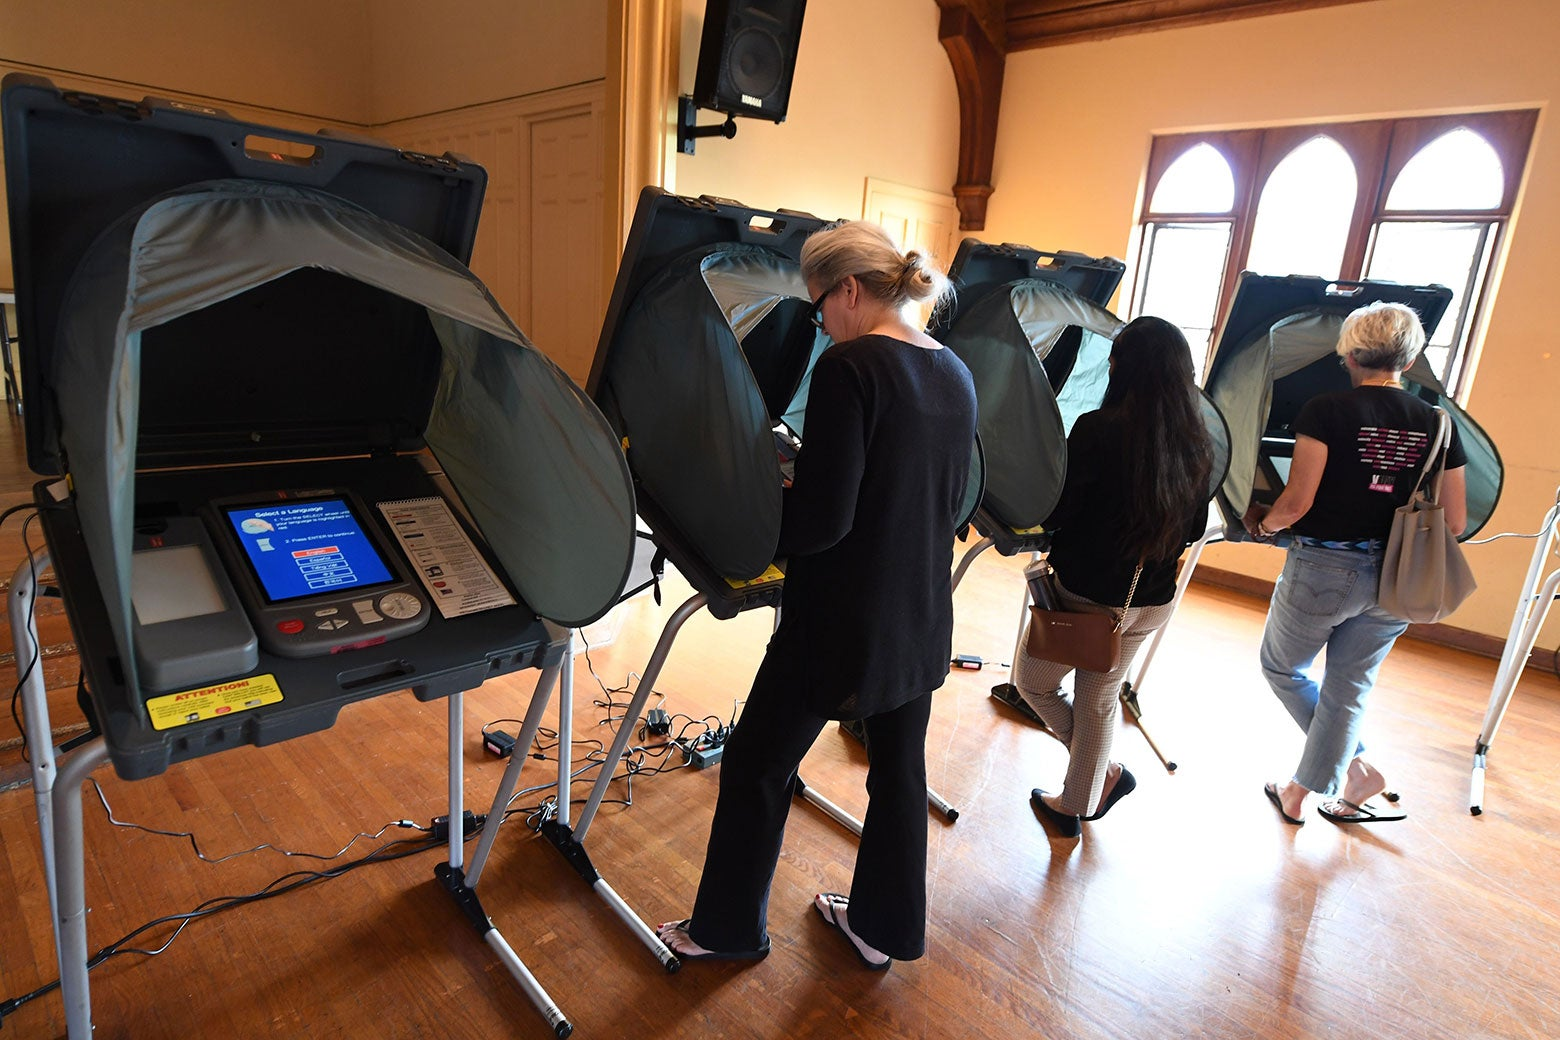 People use electronic voting machines to cast their ballots.